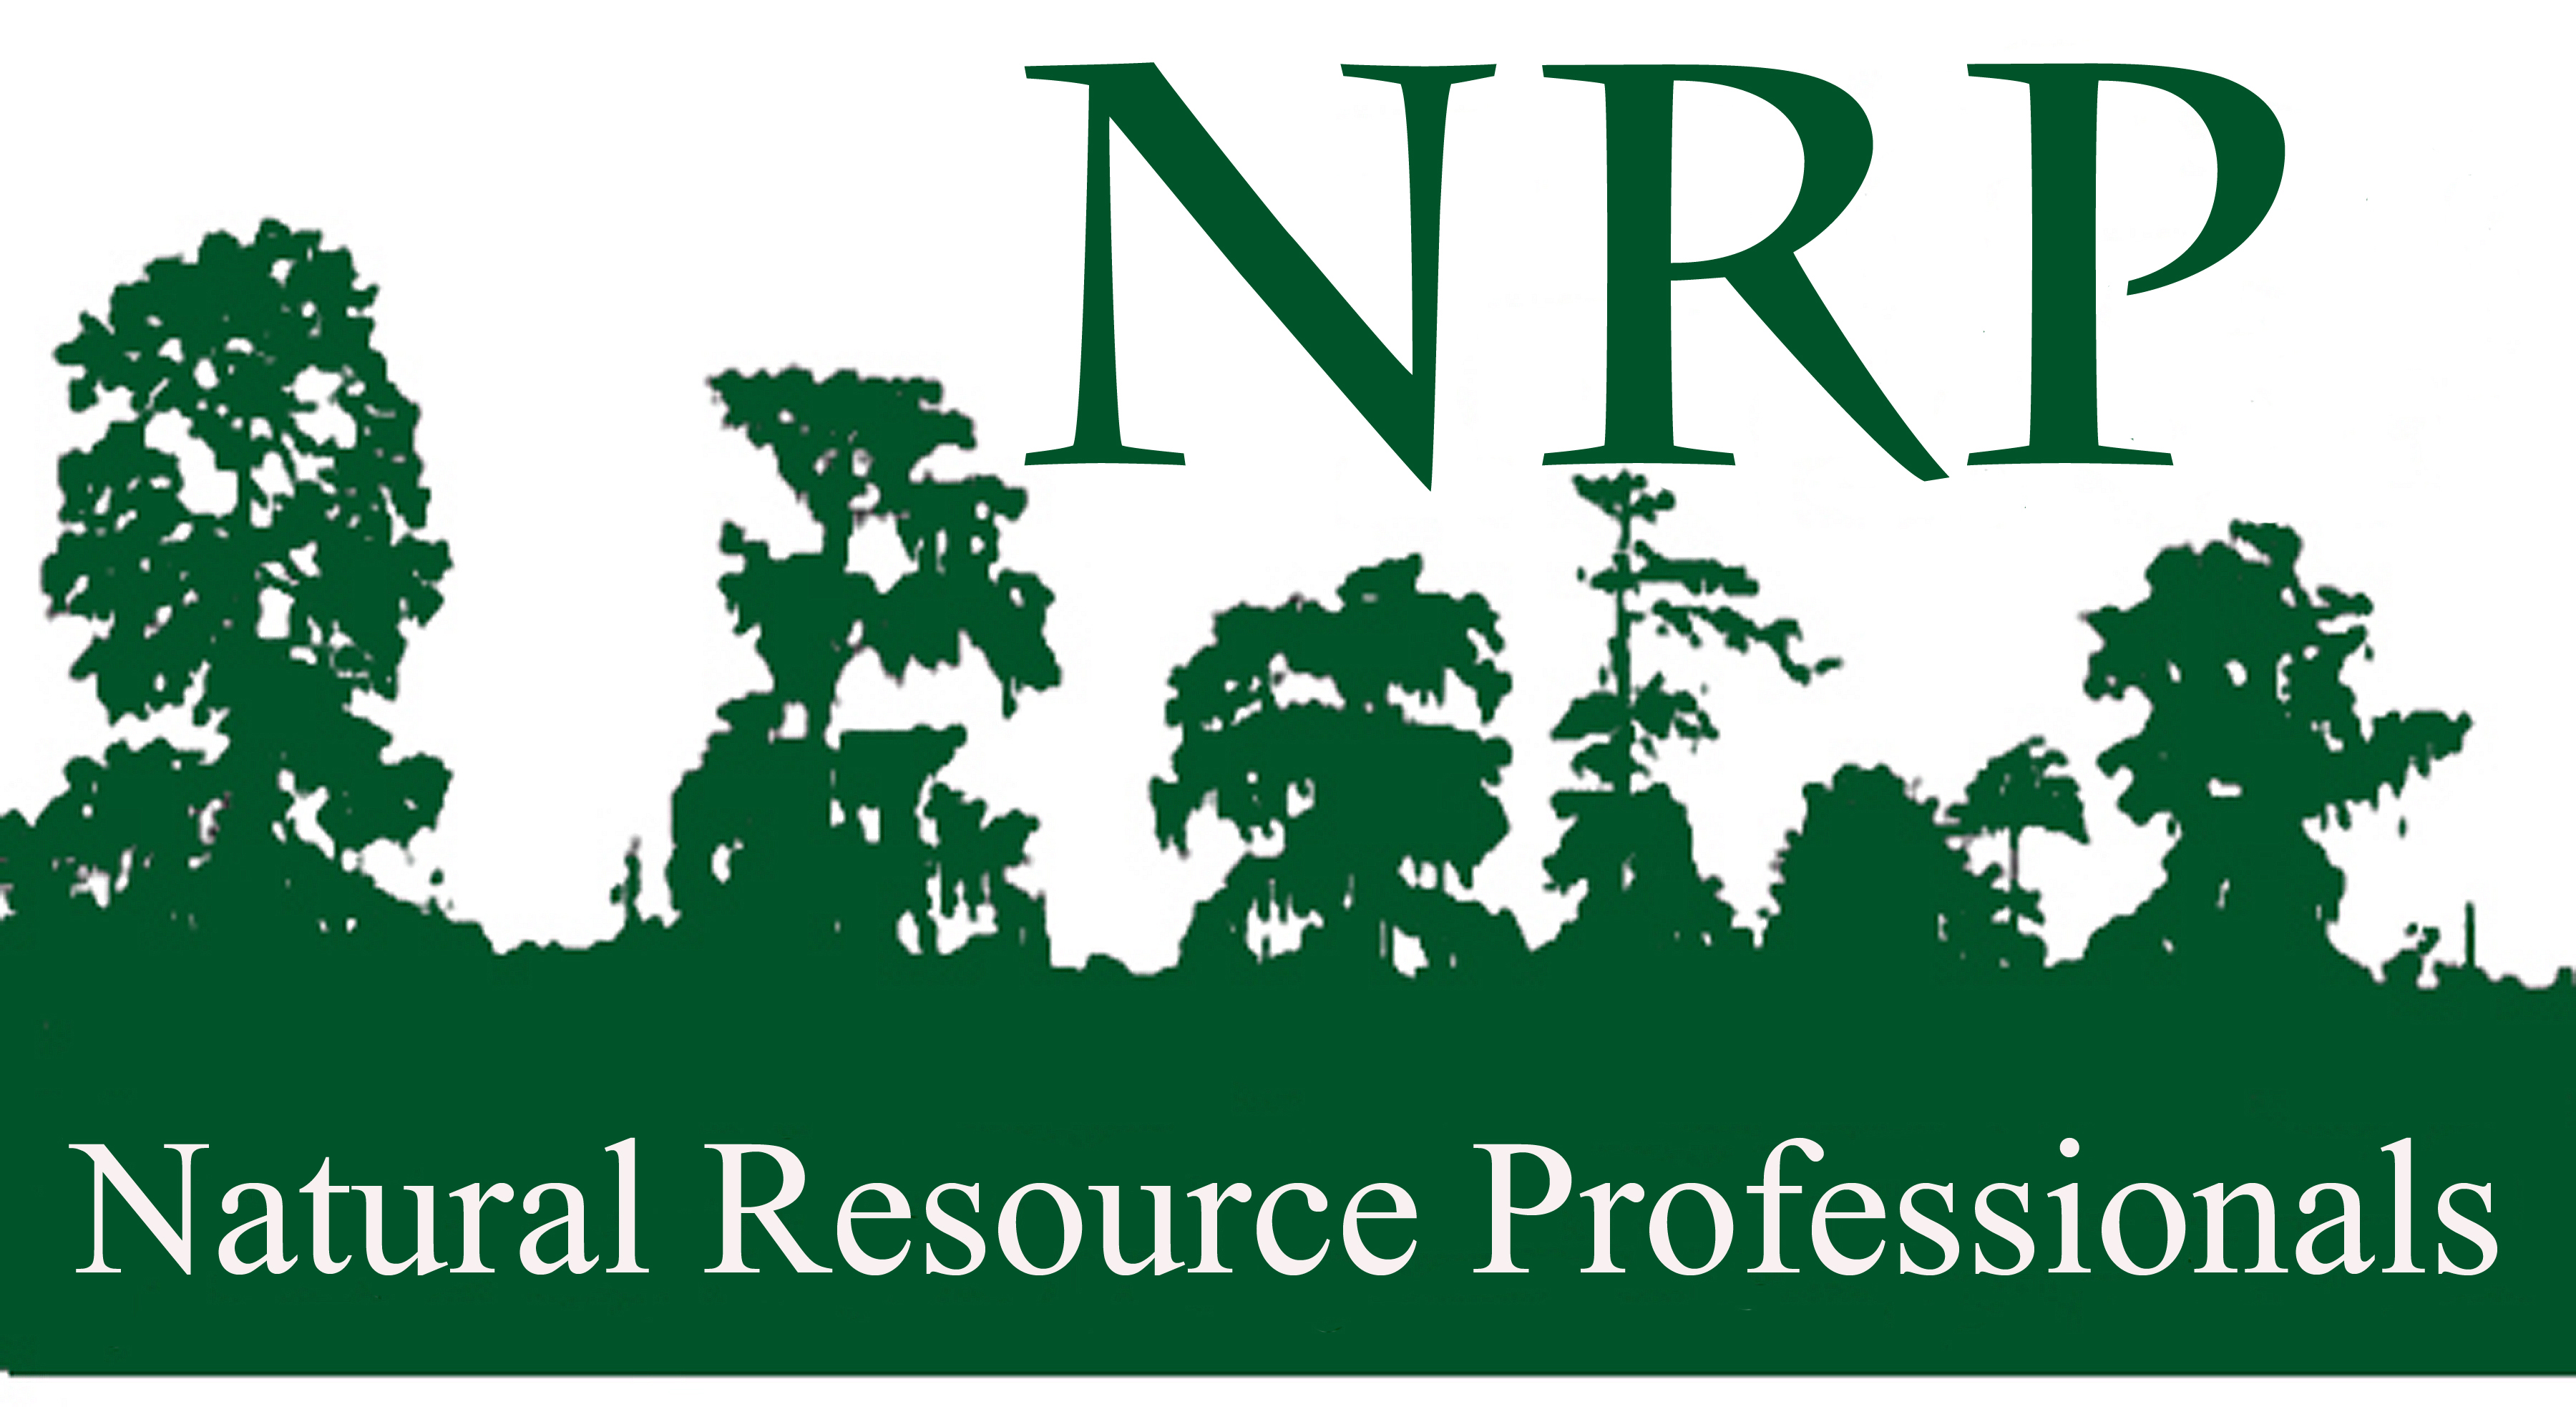 Natural Resource Professionals, LLC logo